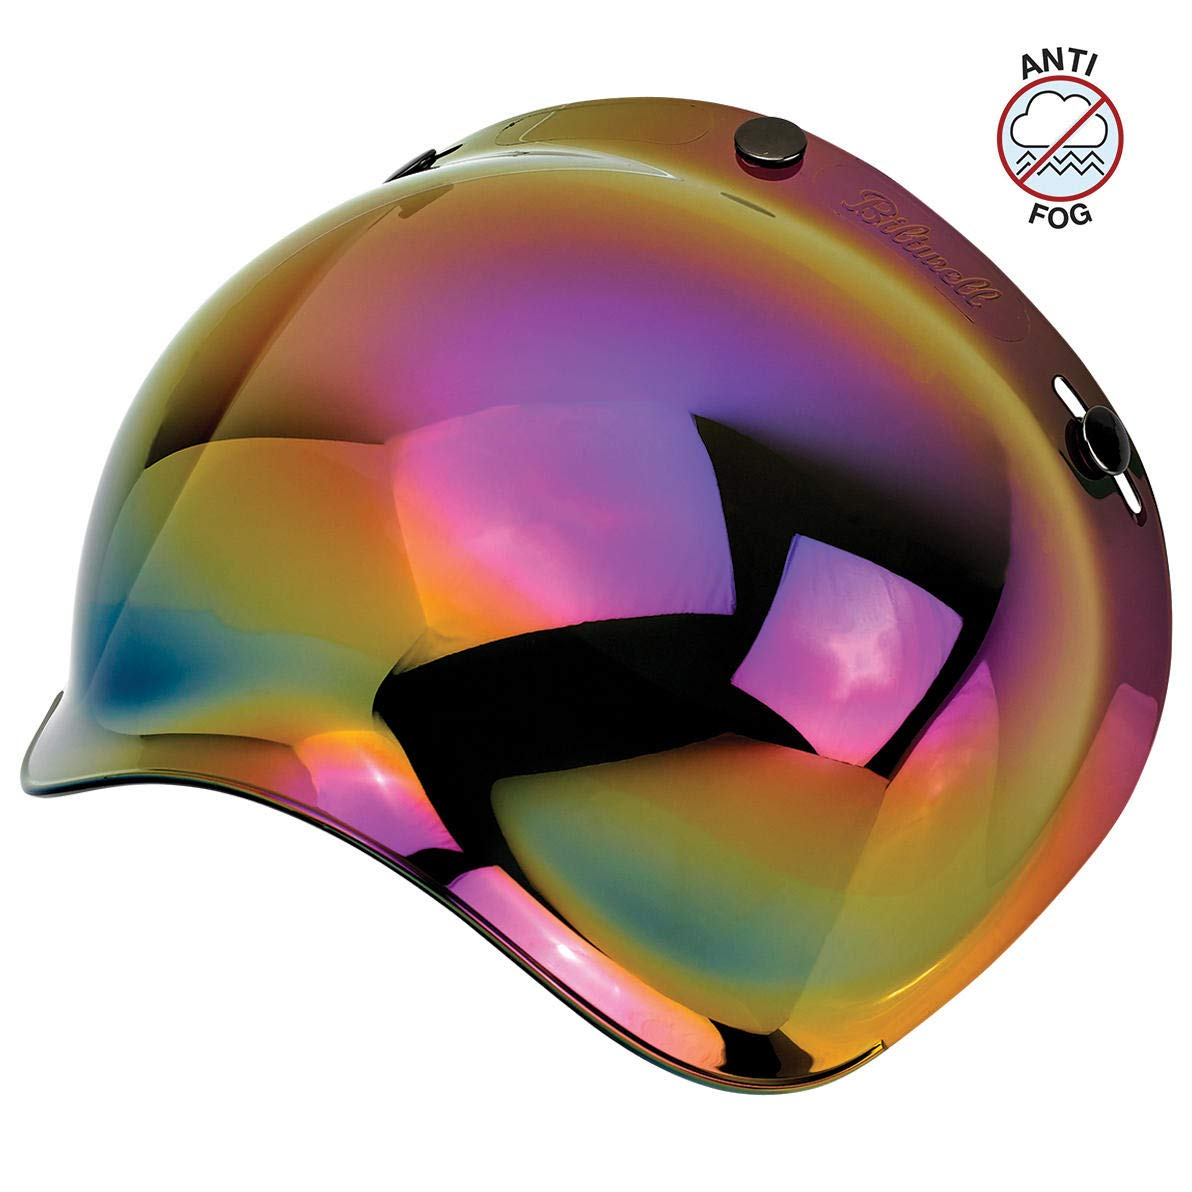 Biltwell Unisex-Adult's (BS-GLD-AF-SD) Bubble Shield - Gold Mirror - Anti-Fog, One Size,